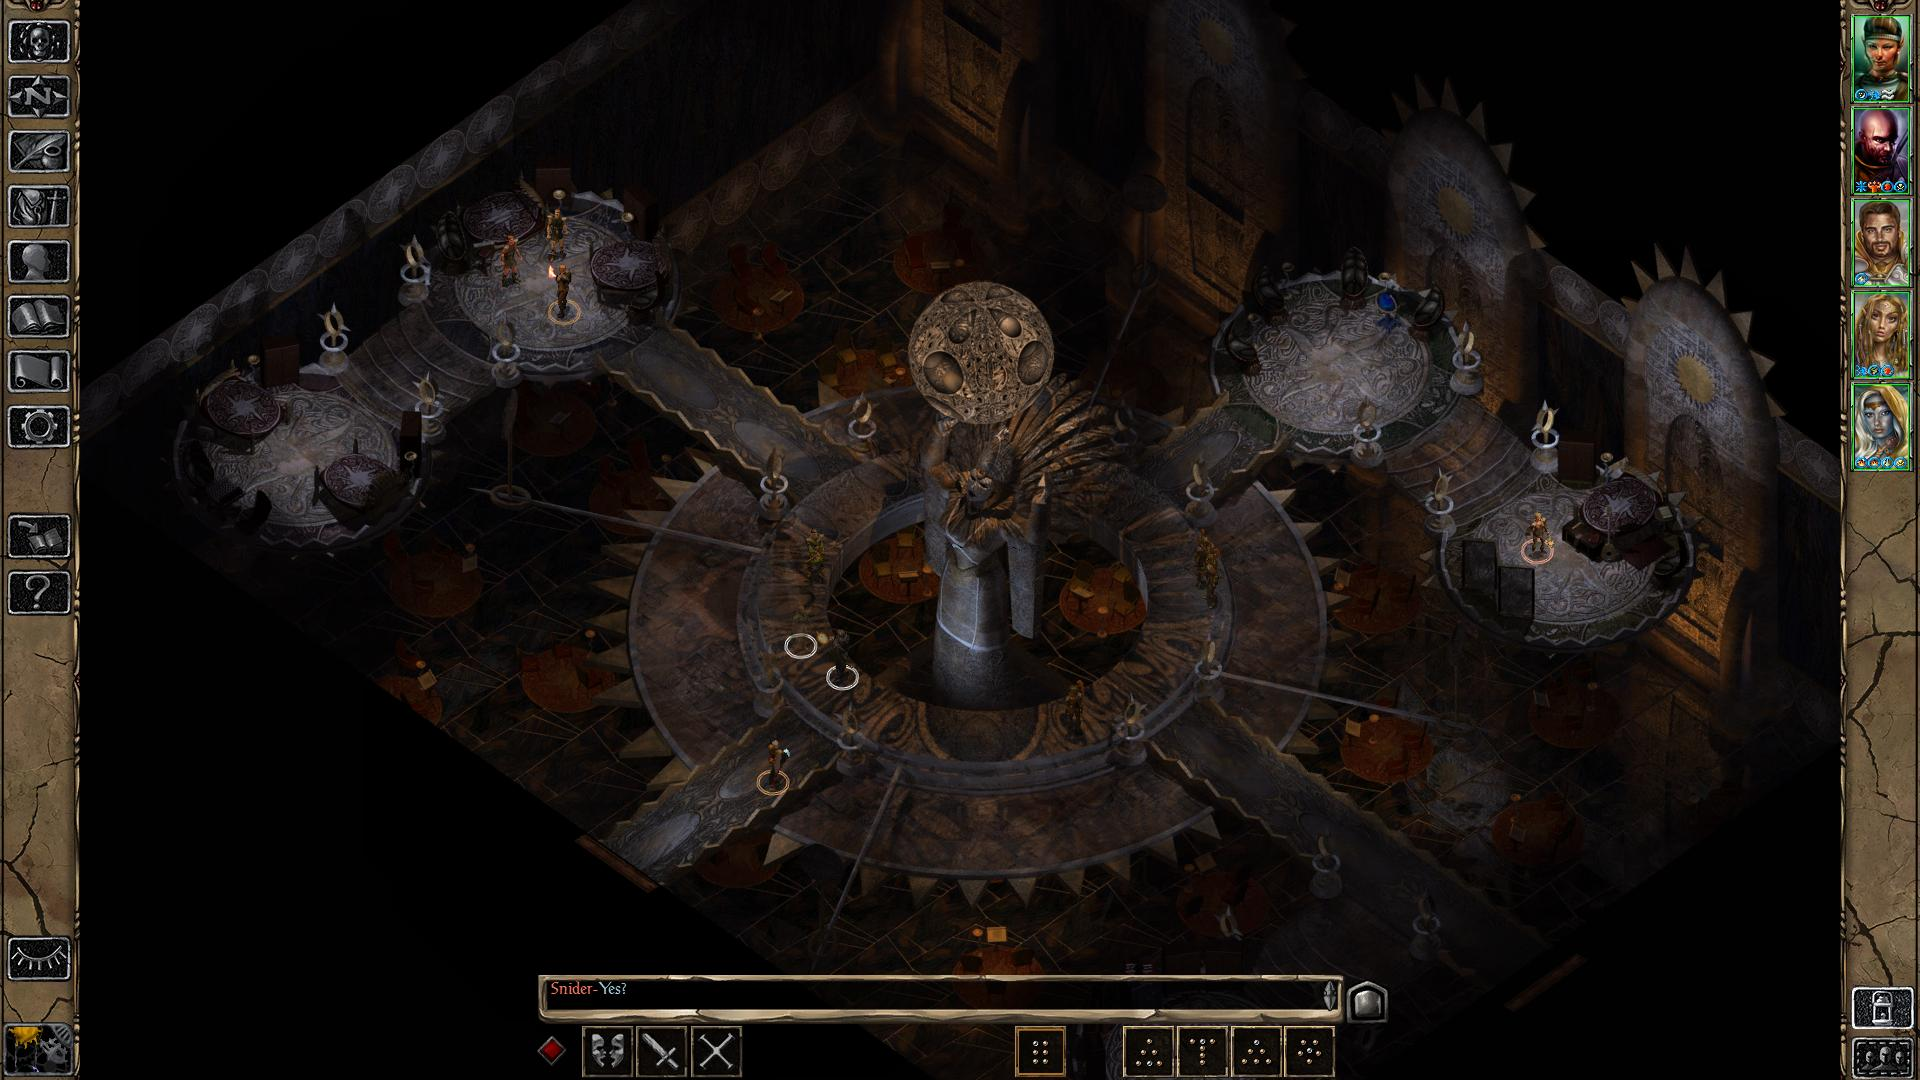 Baldur's Gate 2: Enhanced Edition PC and Mac Release Date Confirmed, First Gameplay Trailer Now Available #28619